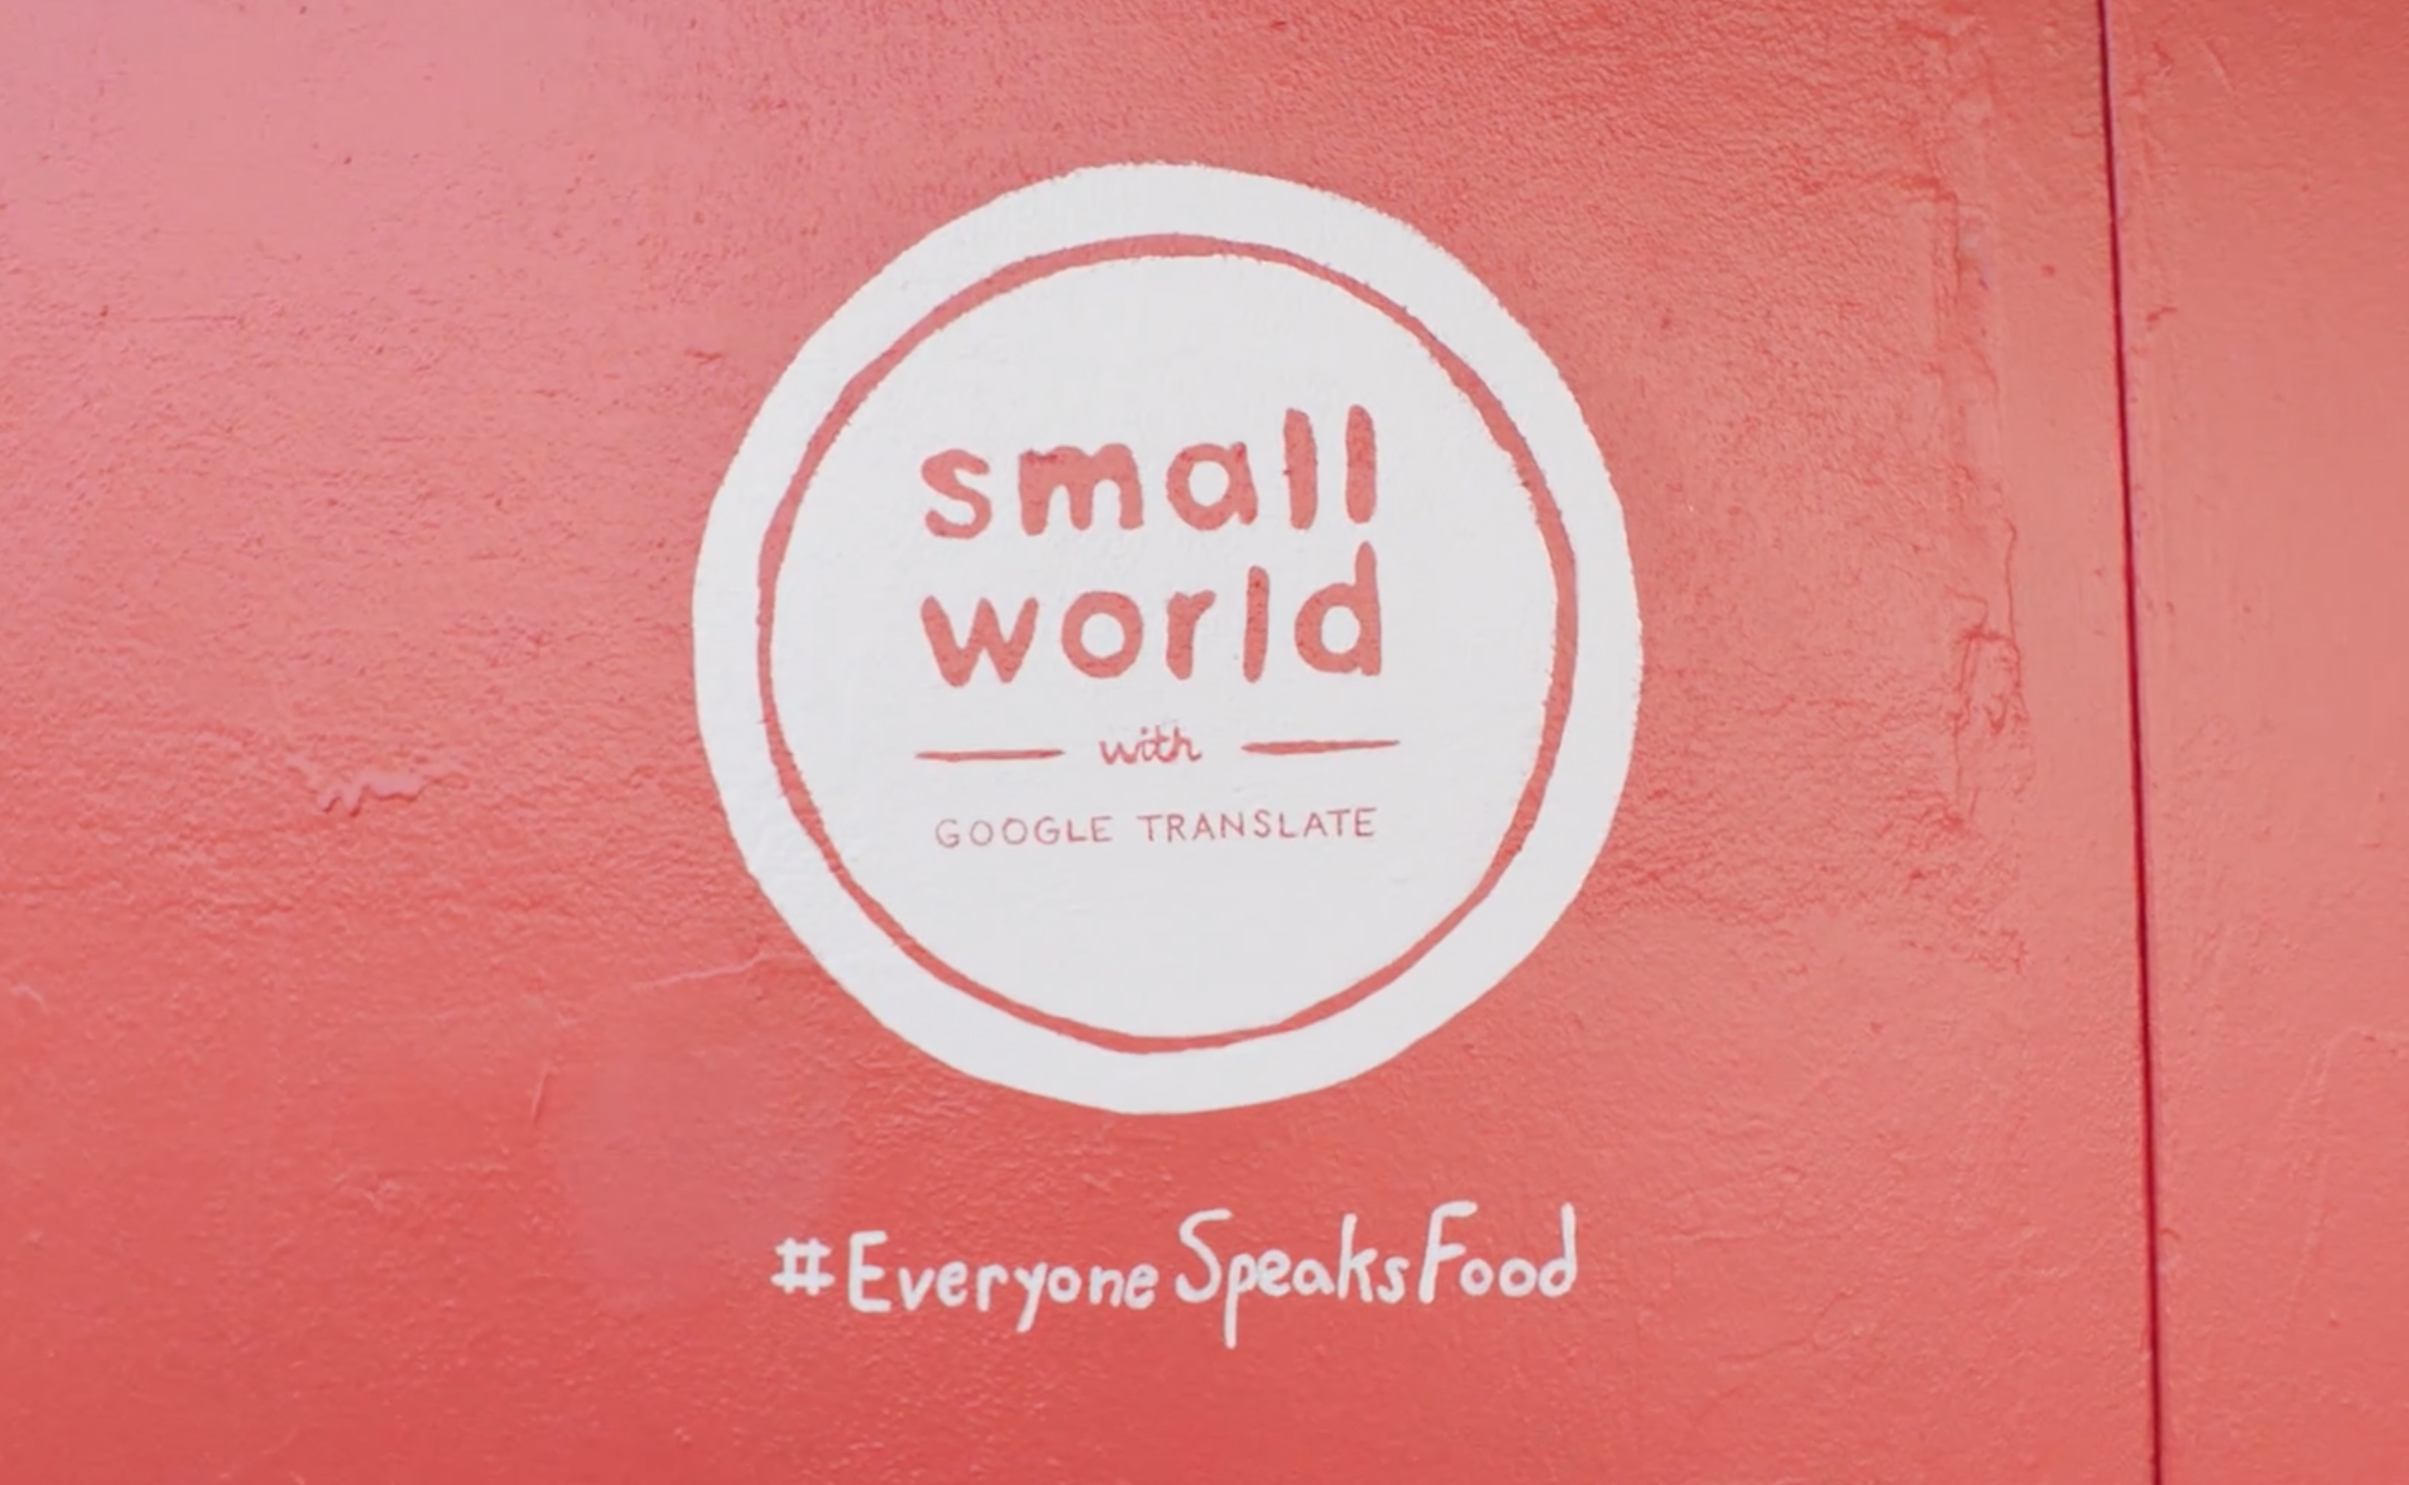 small_world_everyonespeaksfood